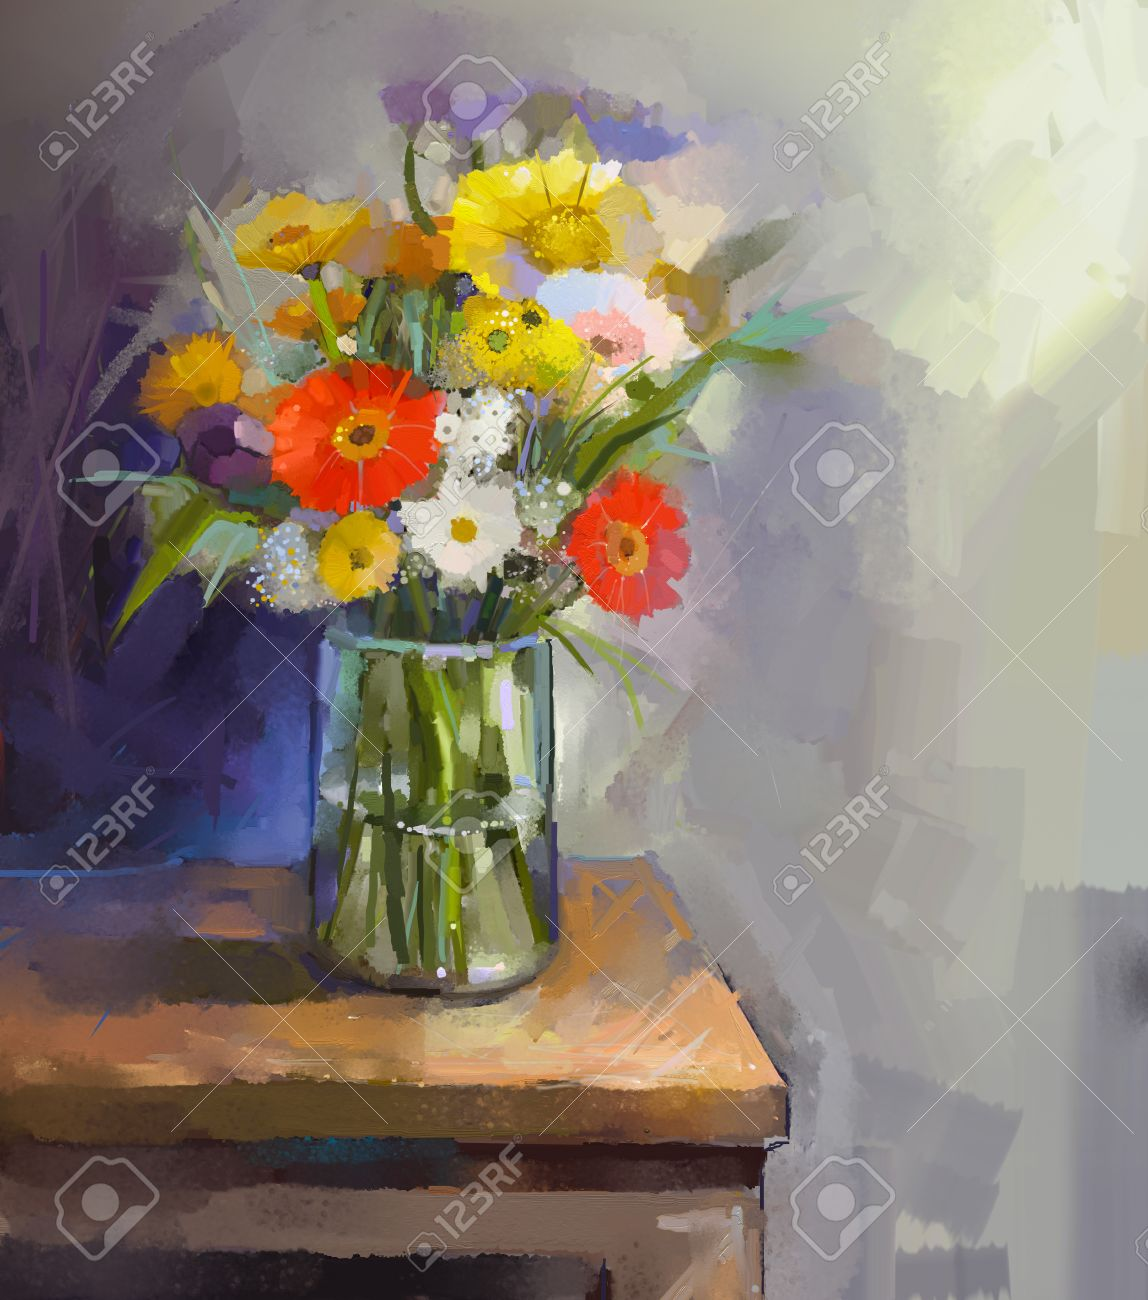 21553 flower vase stock illustrations cliparts and royalty free glass vase with bouquet gerbera flowers oil painting reviewsmspy